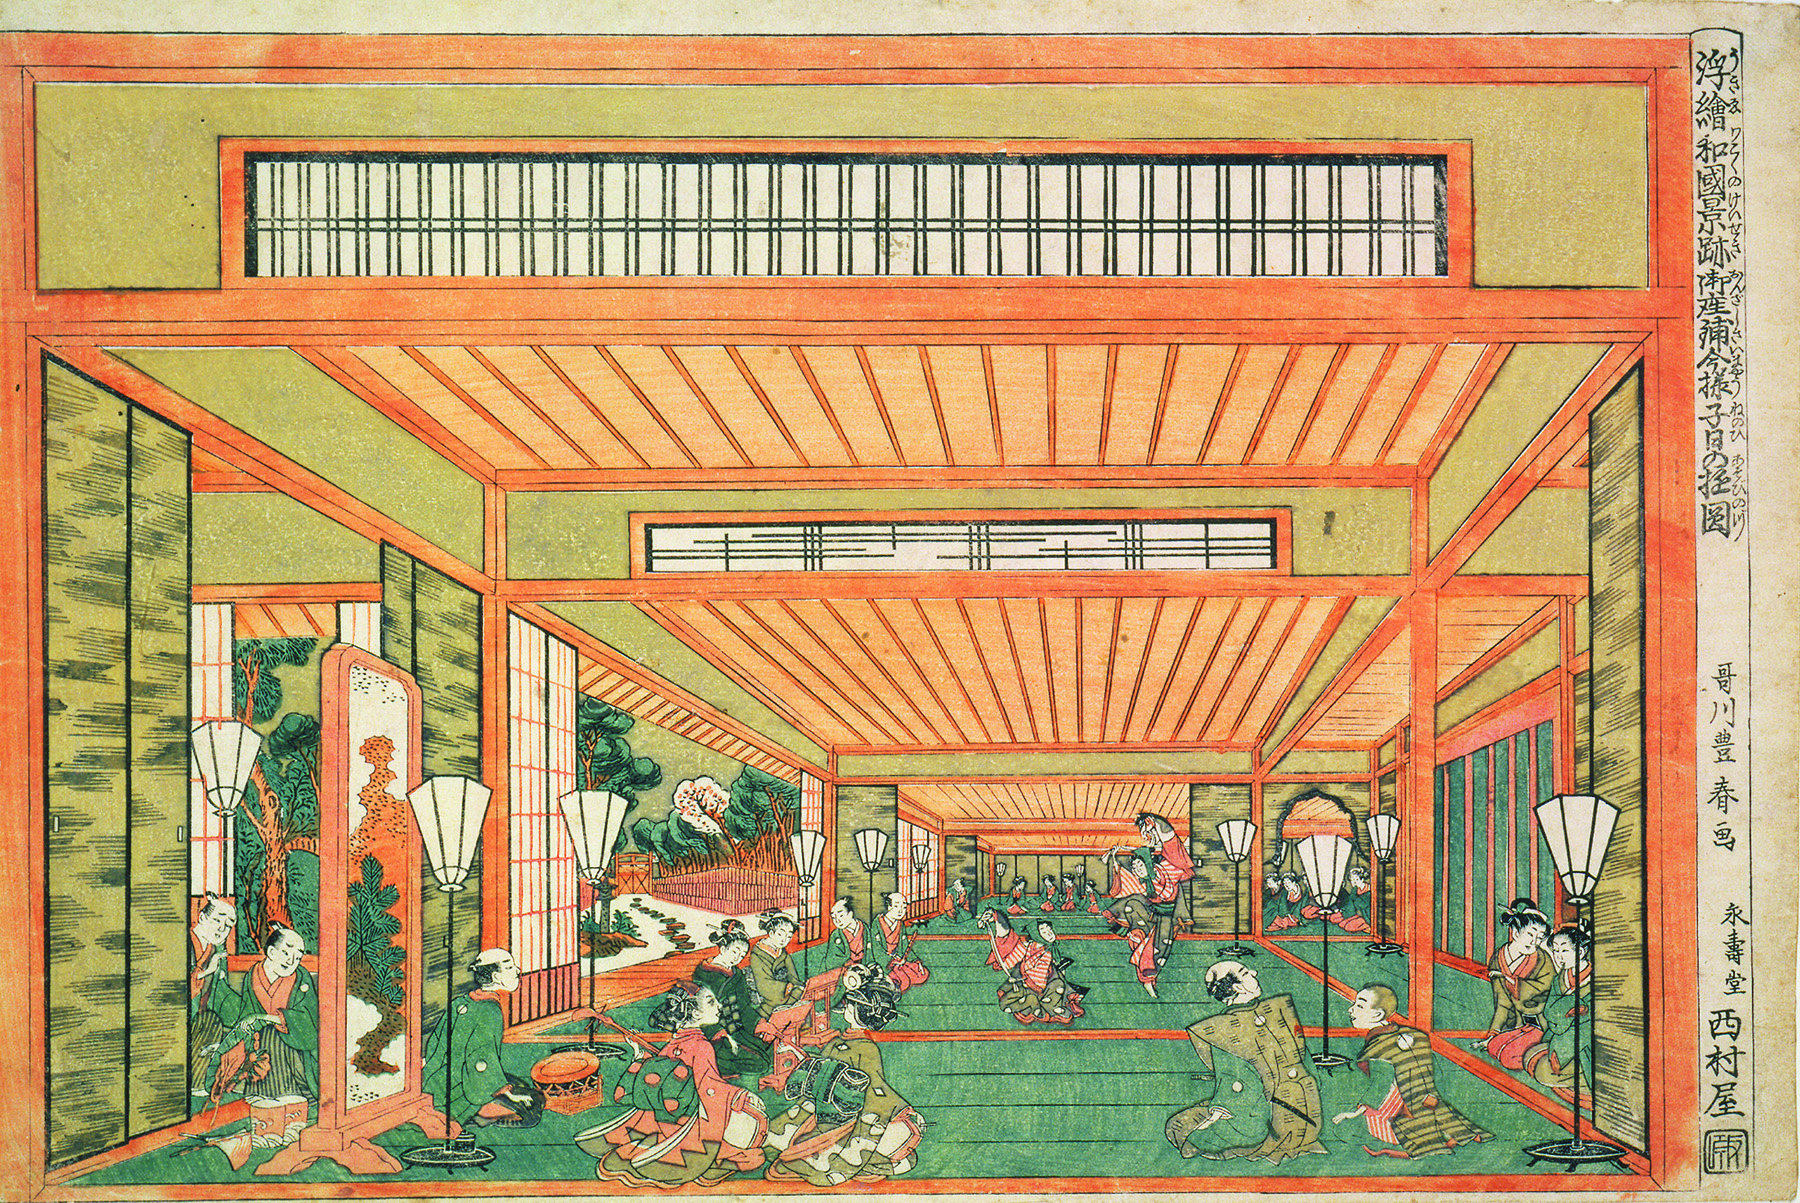 wright and the architecture of japanese prints hammer museum